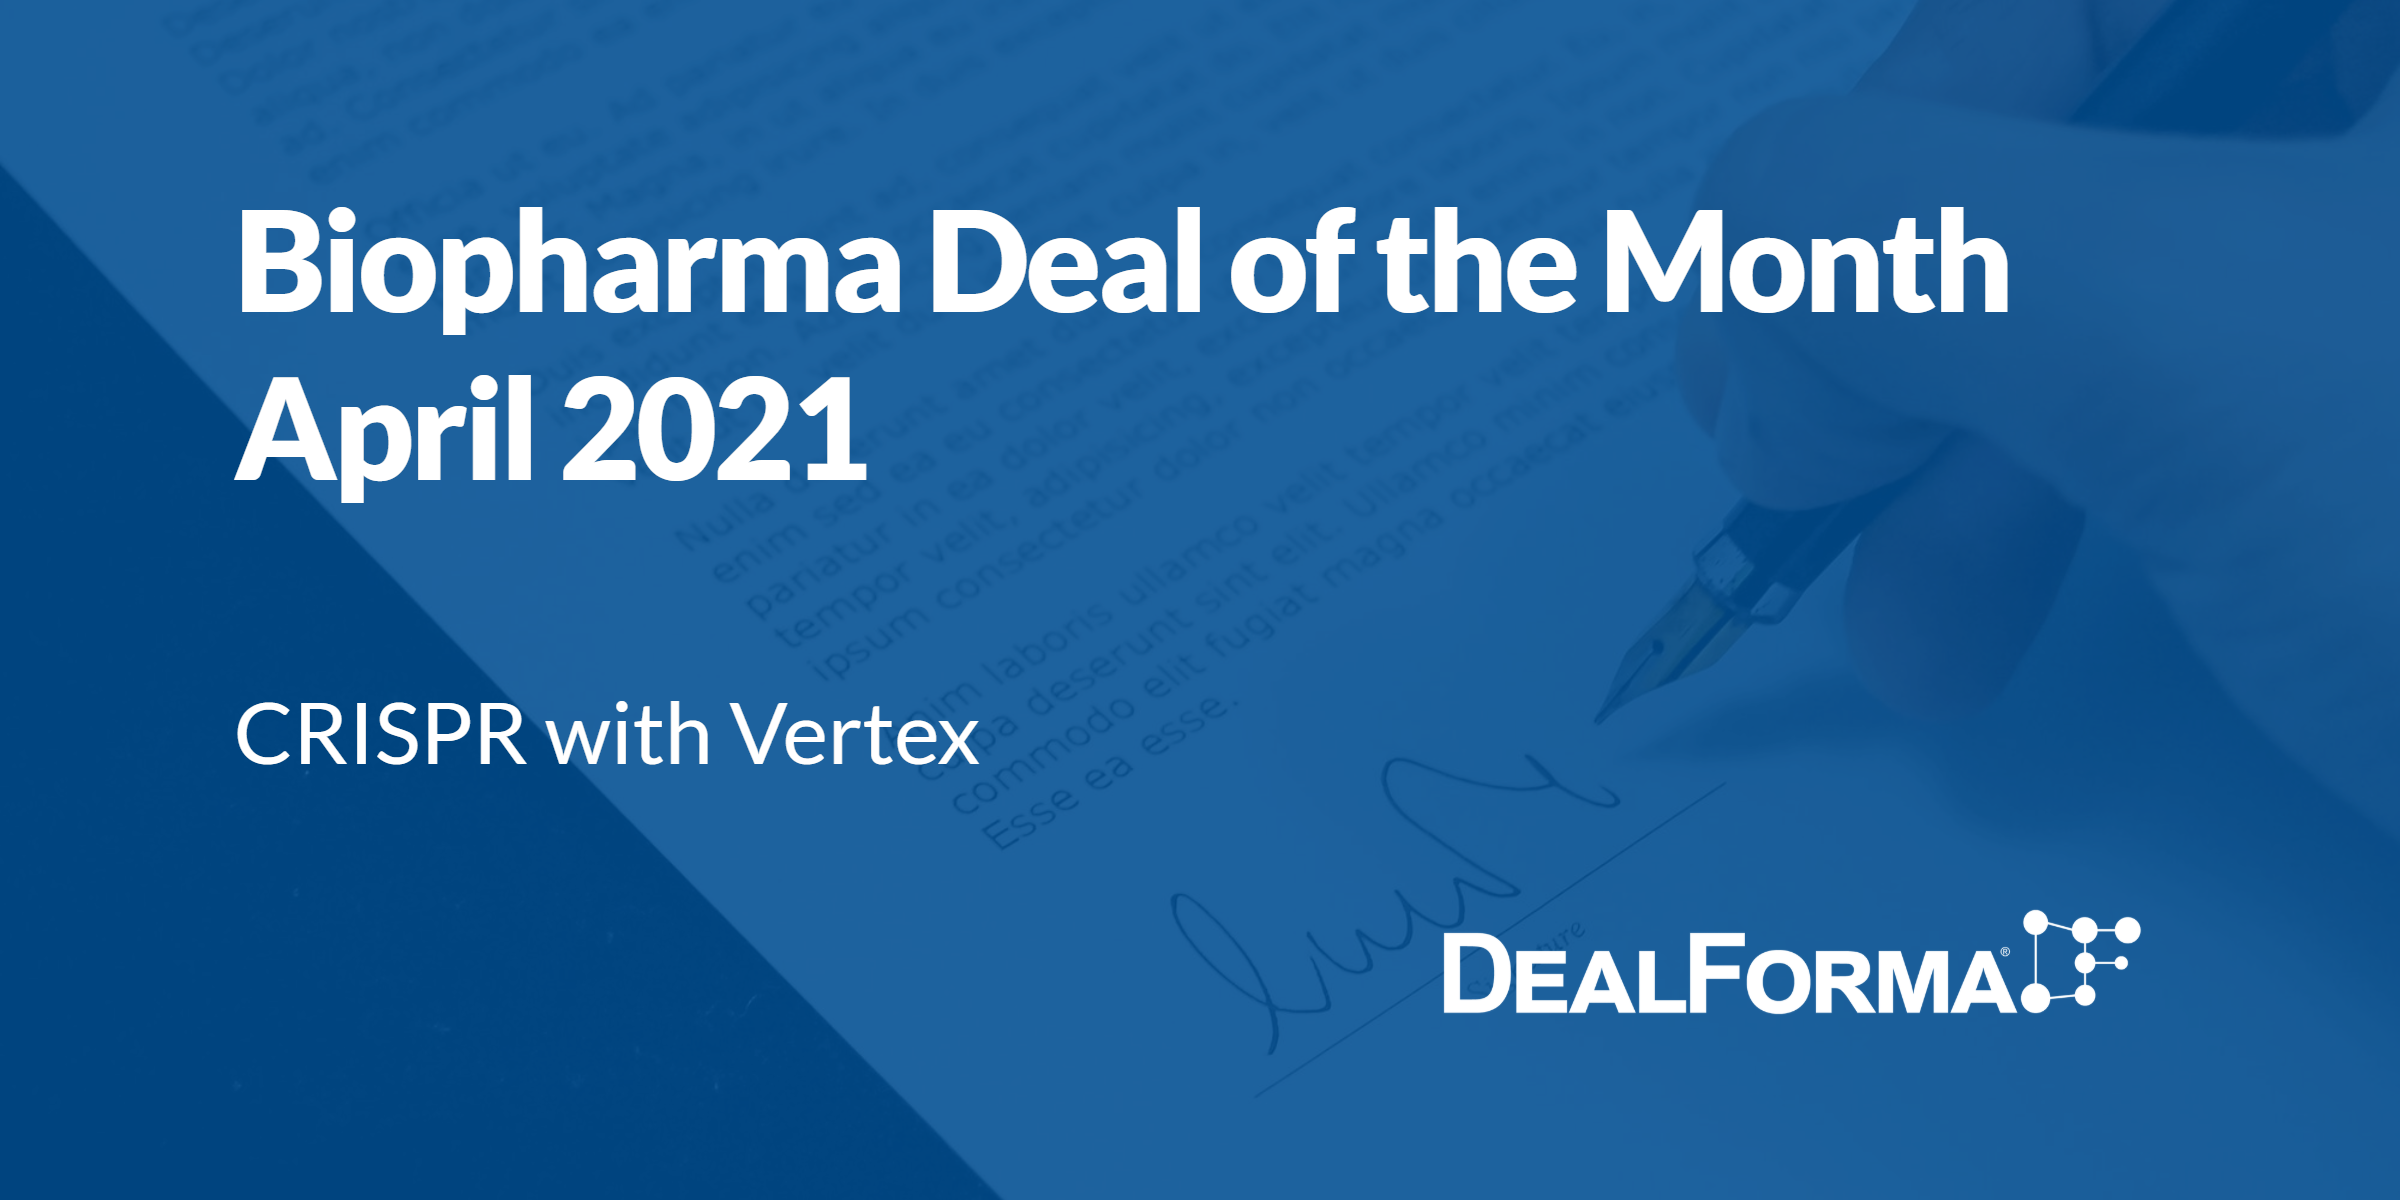 Top Biopharma Deal April 2021: CRISPR – Vertex for CTX001 for Sickle Cell Disease and Transfusion-Dependent Beta-Thalassemia